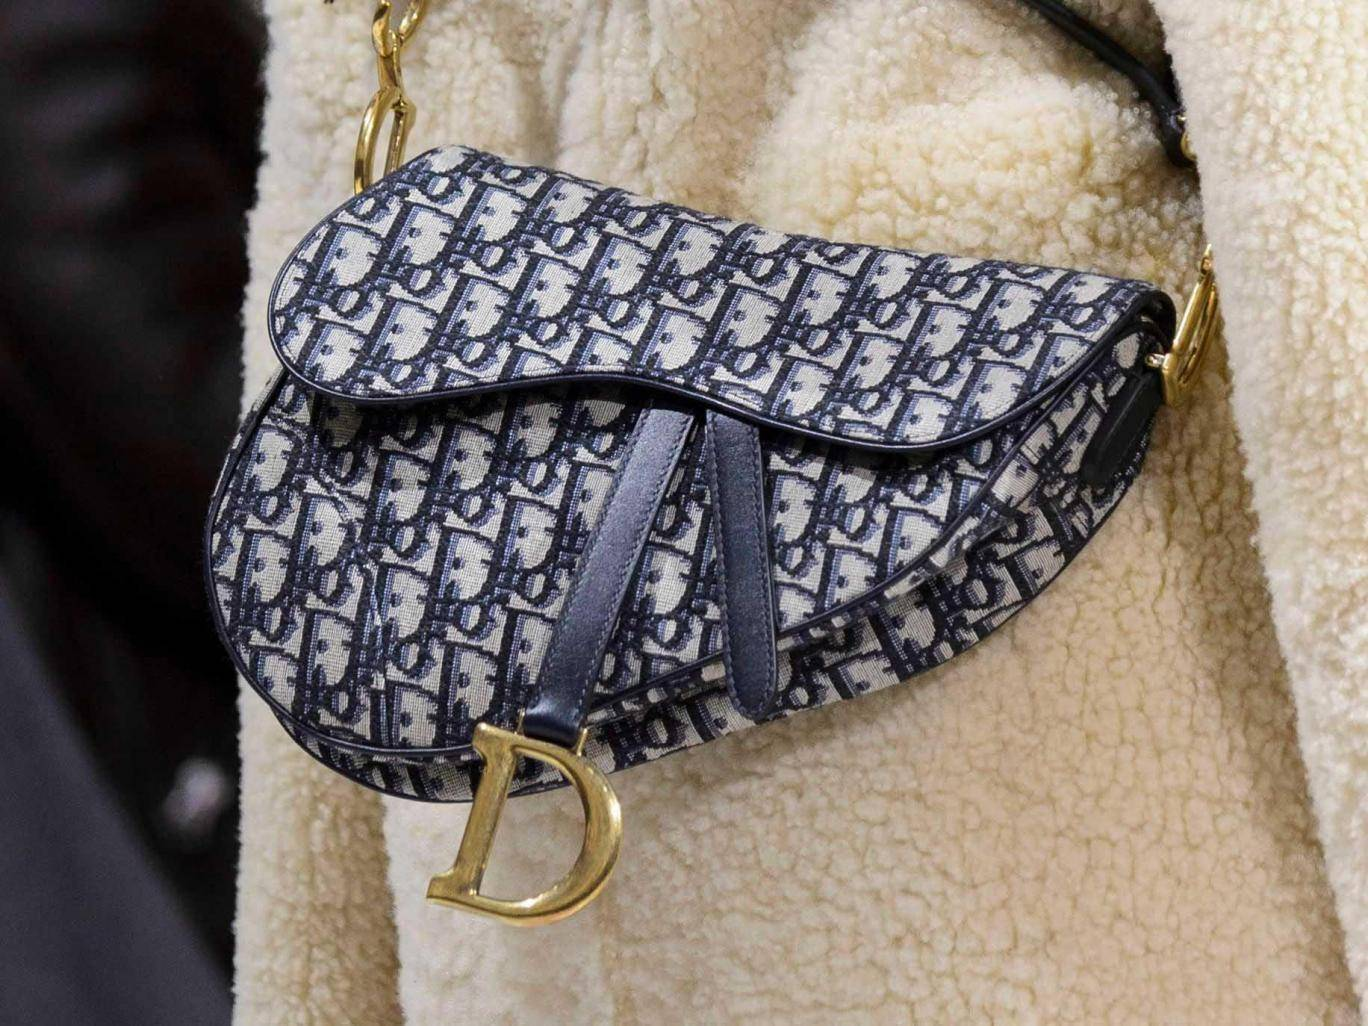 Dior saddle bag is back